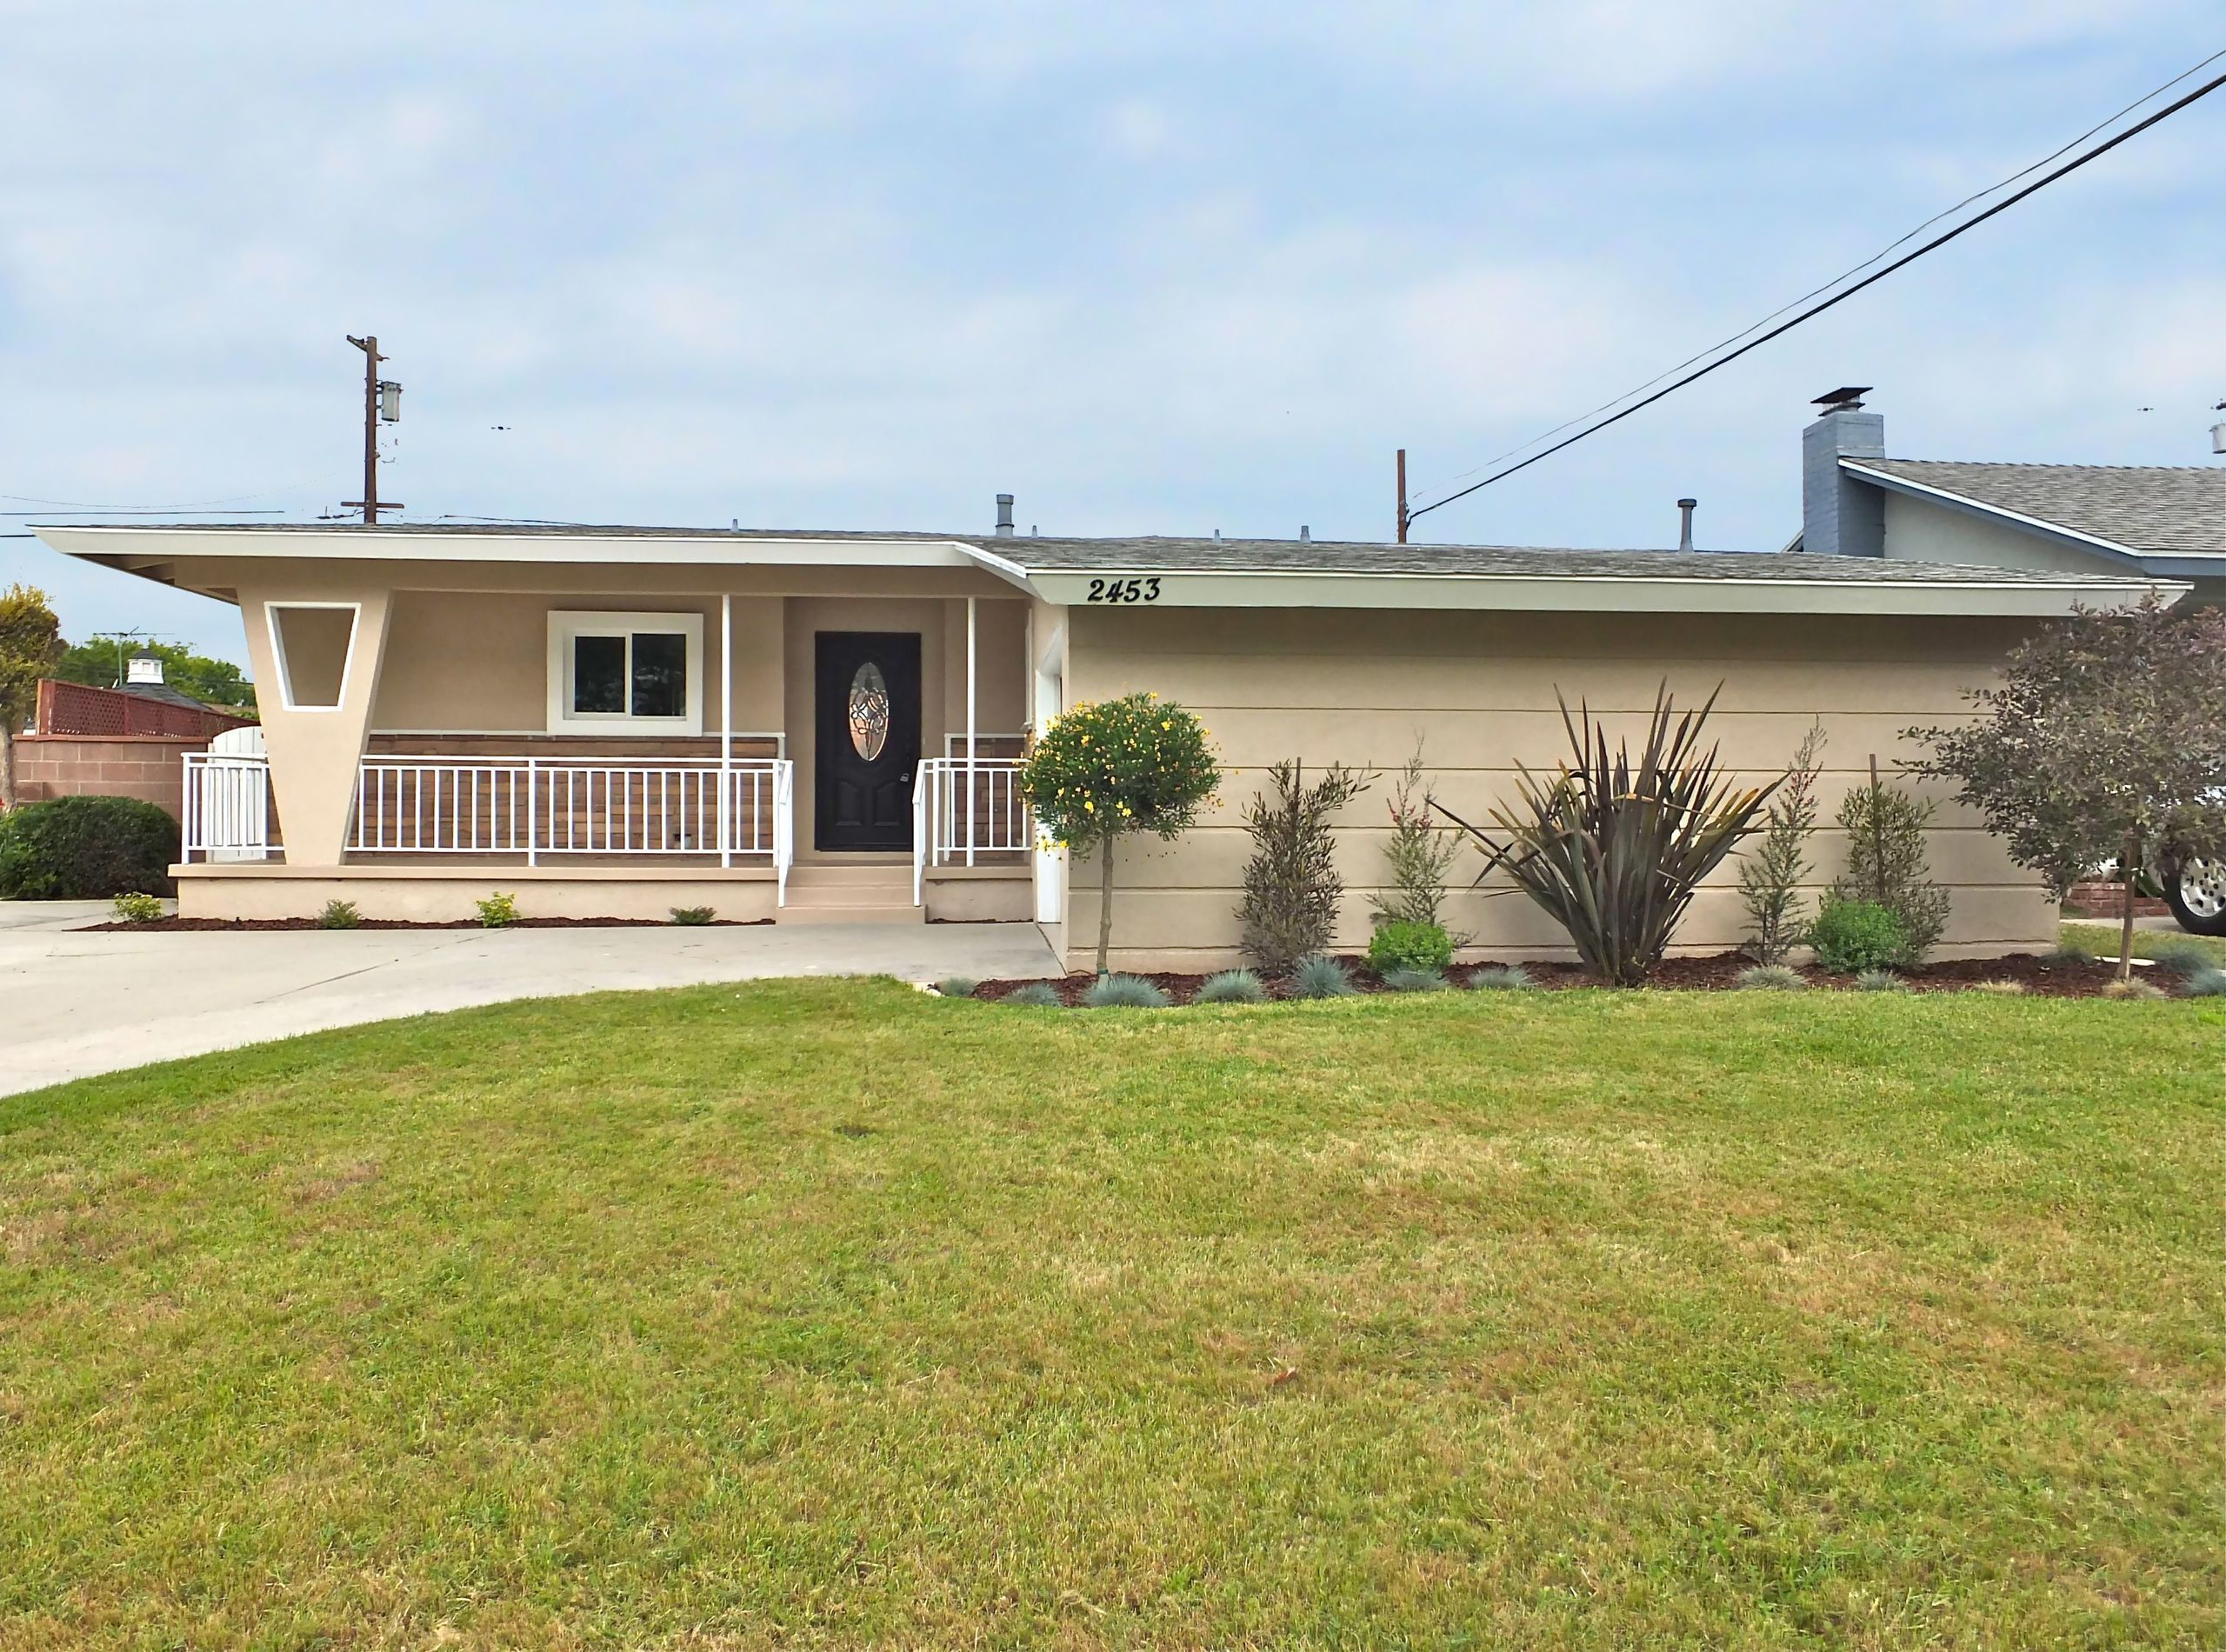 2453 Monogram Ave Long Beach, CA 90815